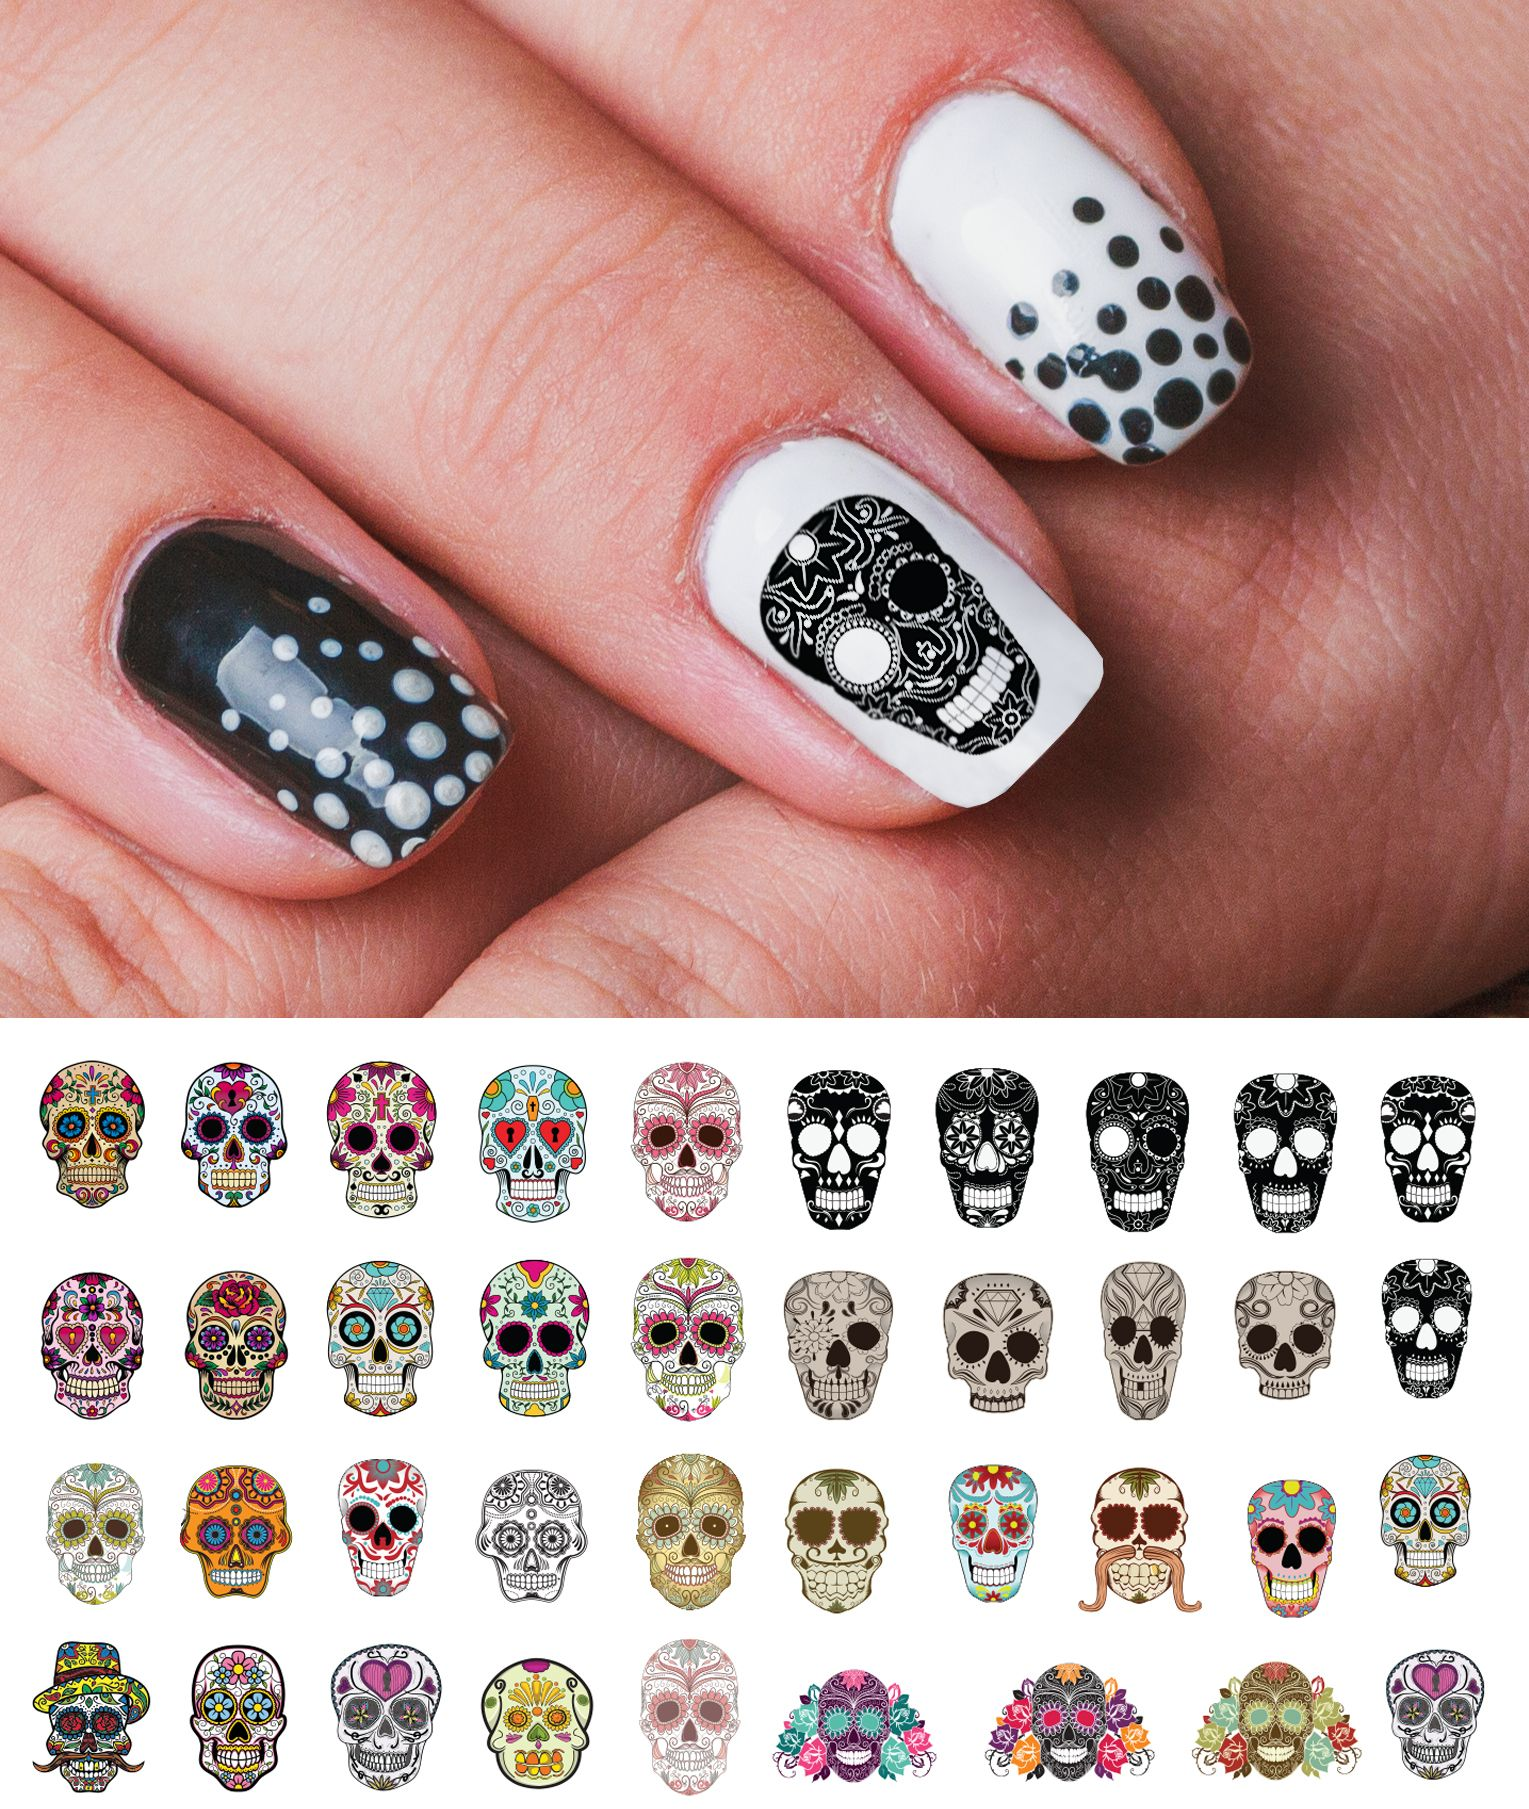 www.moonsugardecals.com offers over 100 different salon quality nail ...